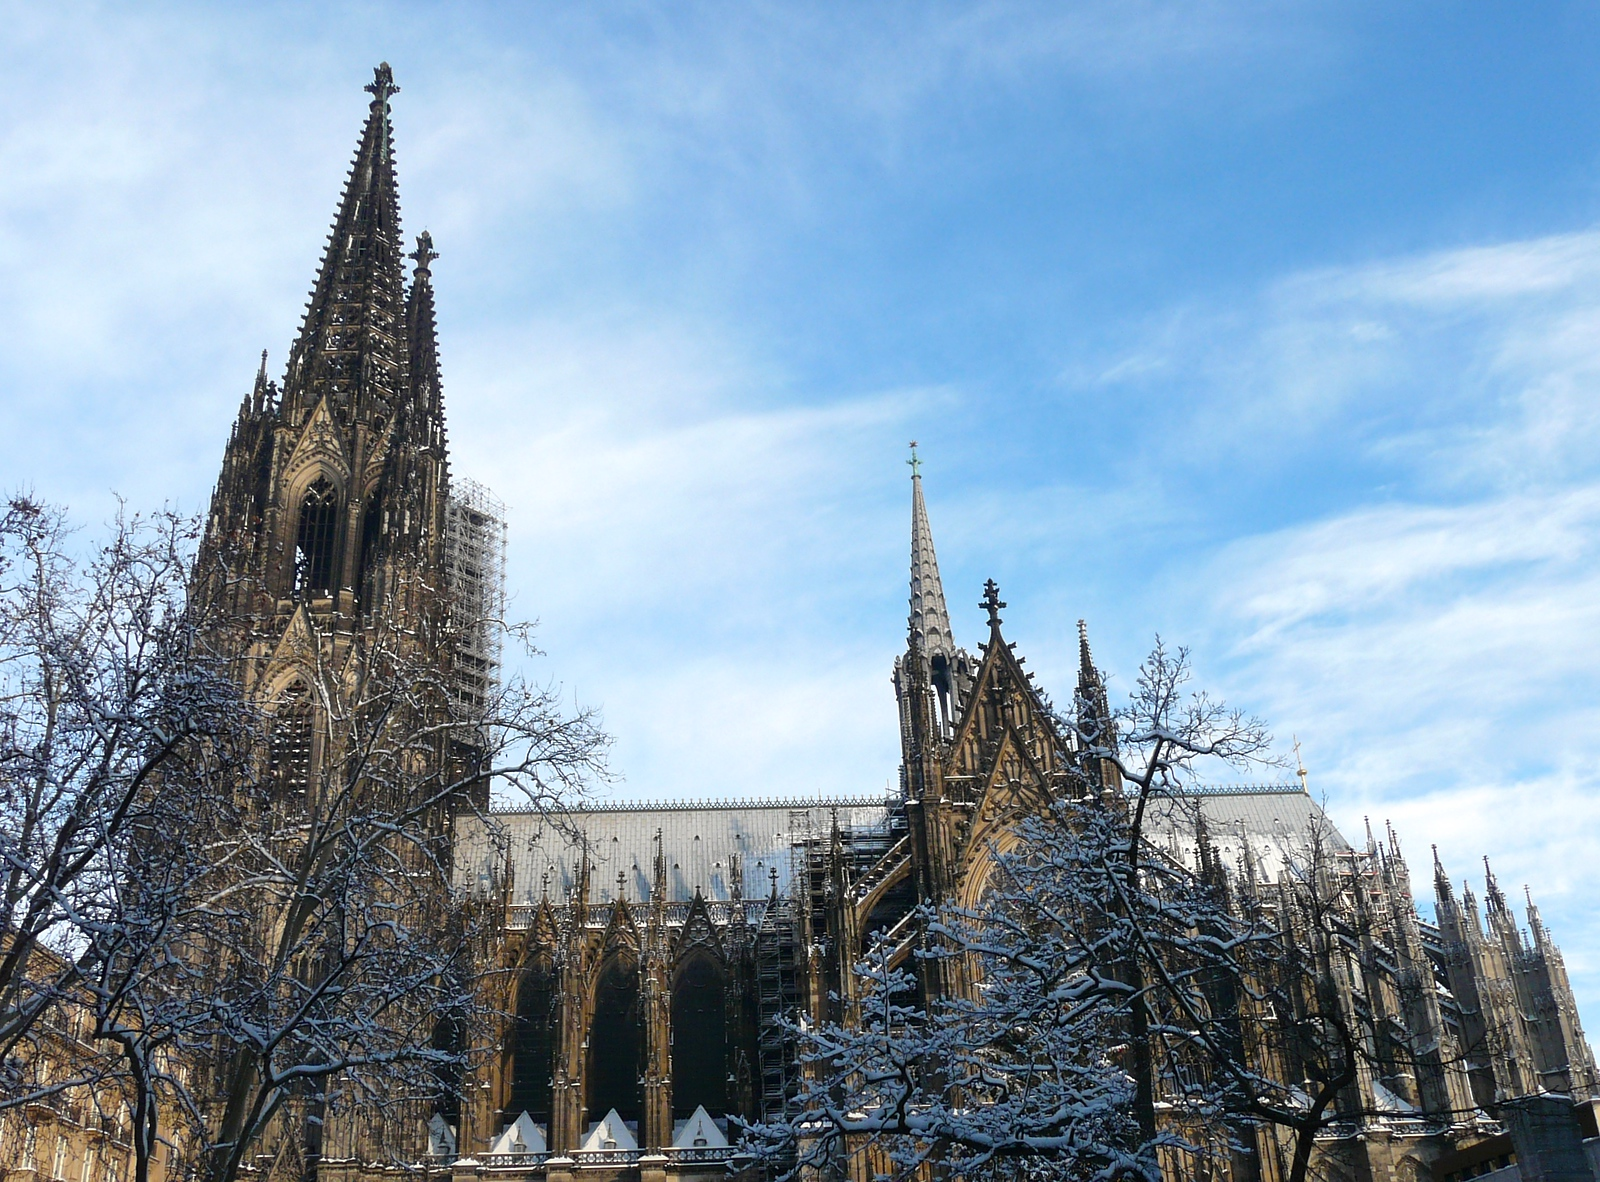 Spires of Cologne cathedral reach into a blue, winter sky